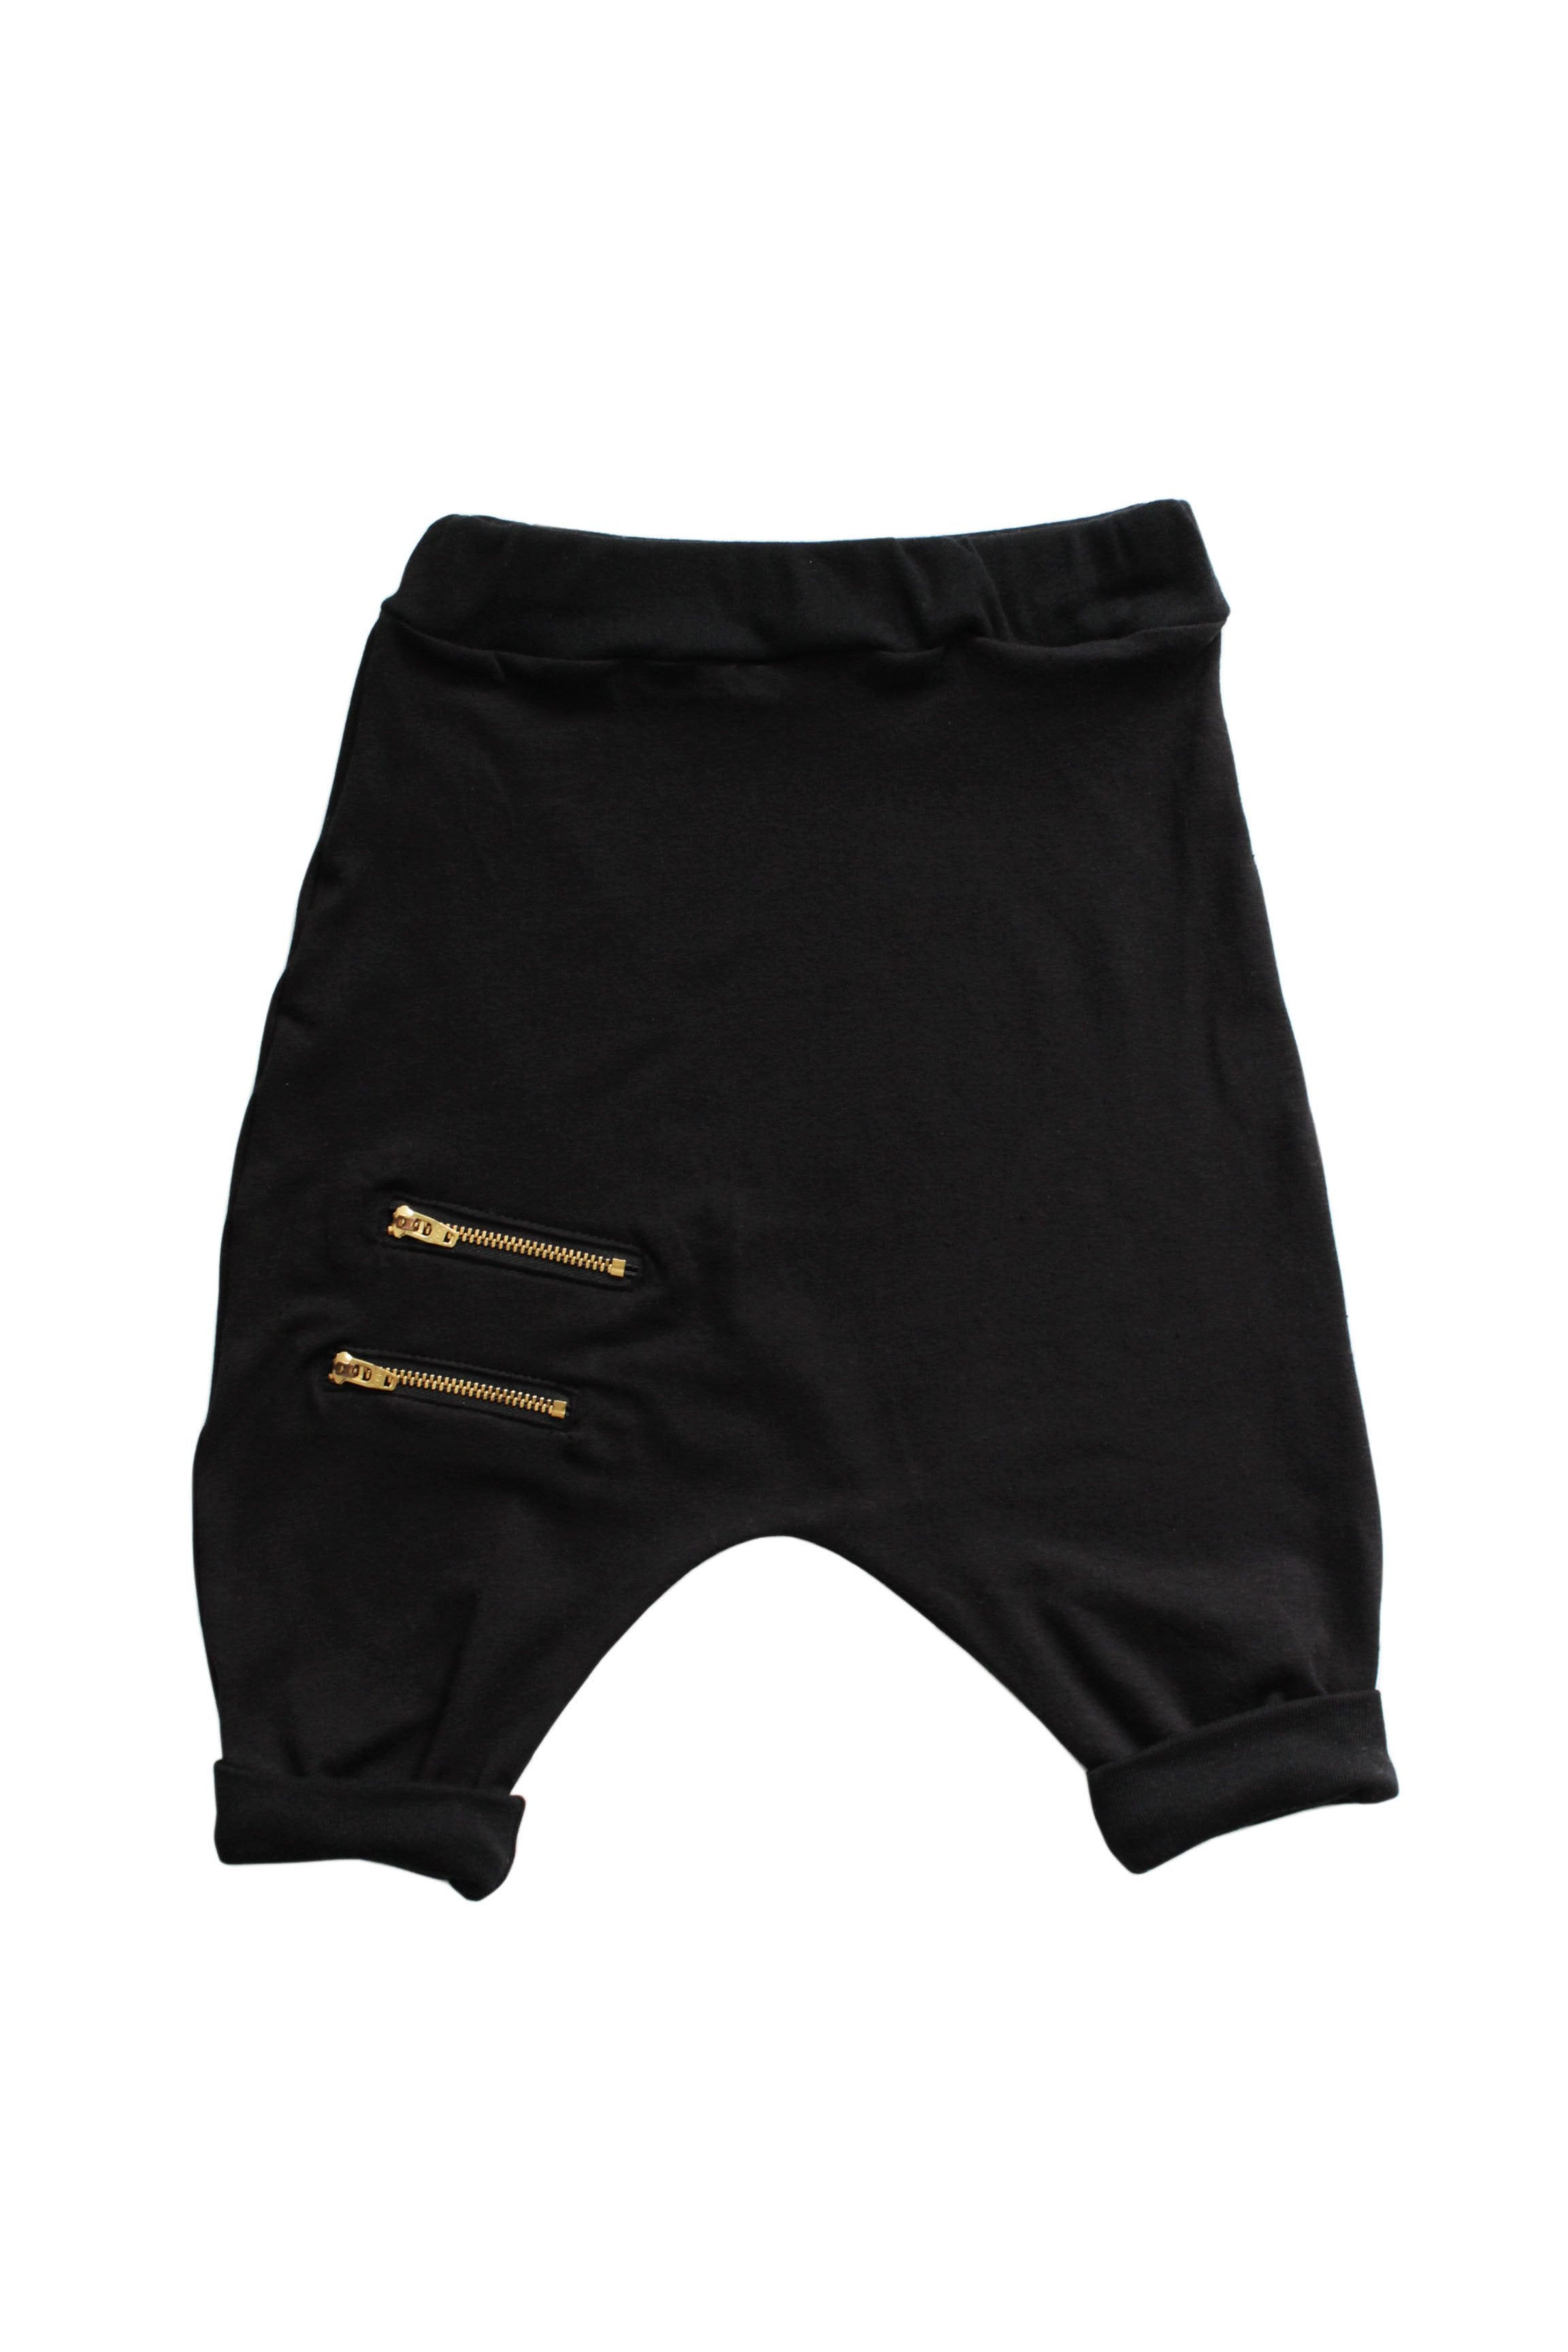 Zipper Harem Shorts - Black